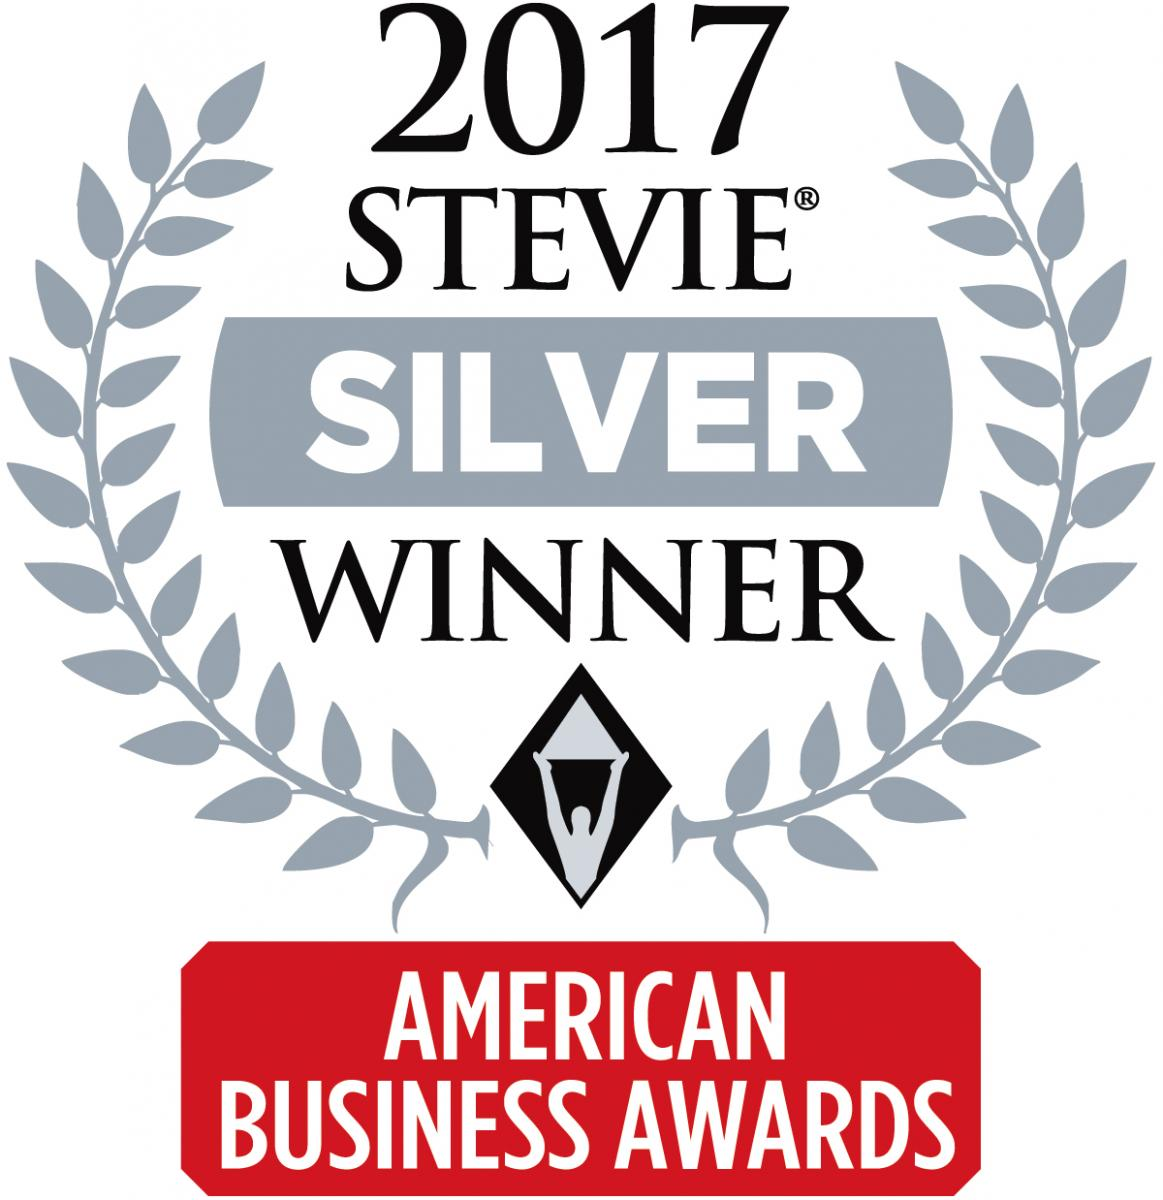 Stevie Silver Award Winner 2017